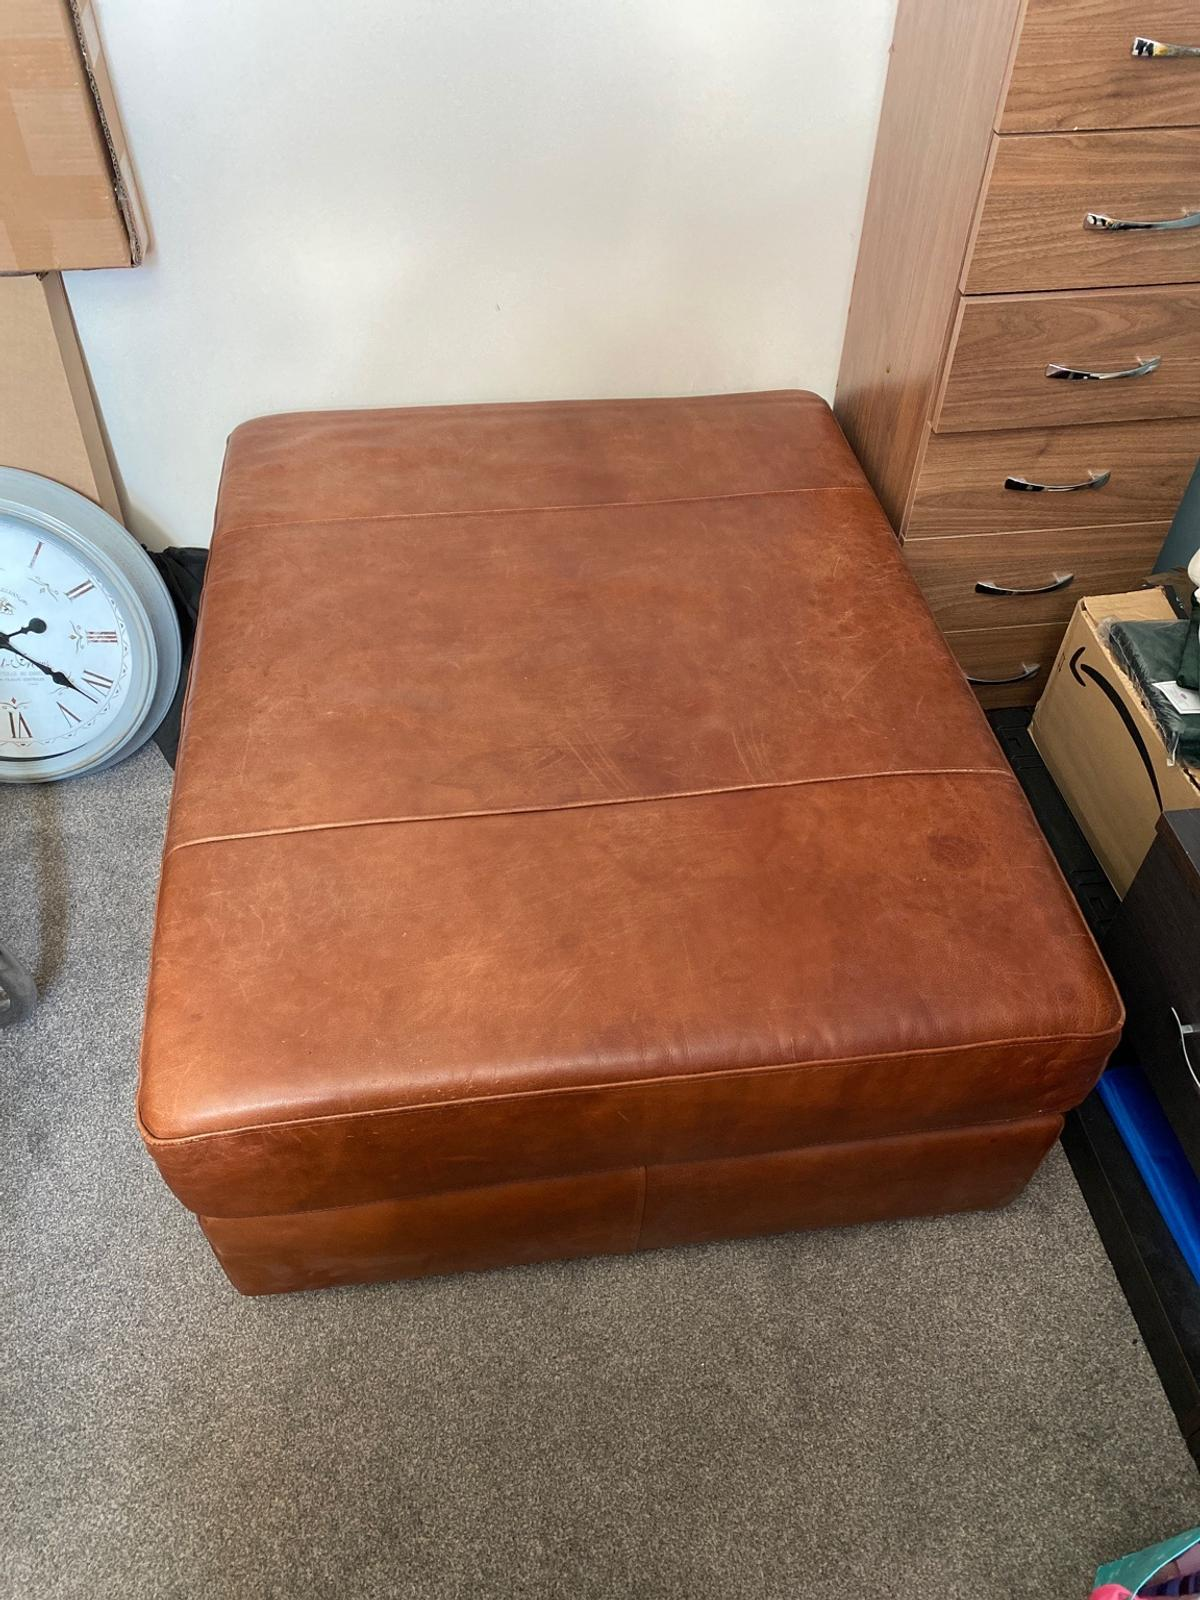 Large leather footrest, no room in house for it since moving, some scratchers from pet on top as she used to like to sleep on it. Smoke free home.